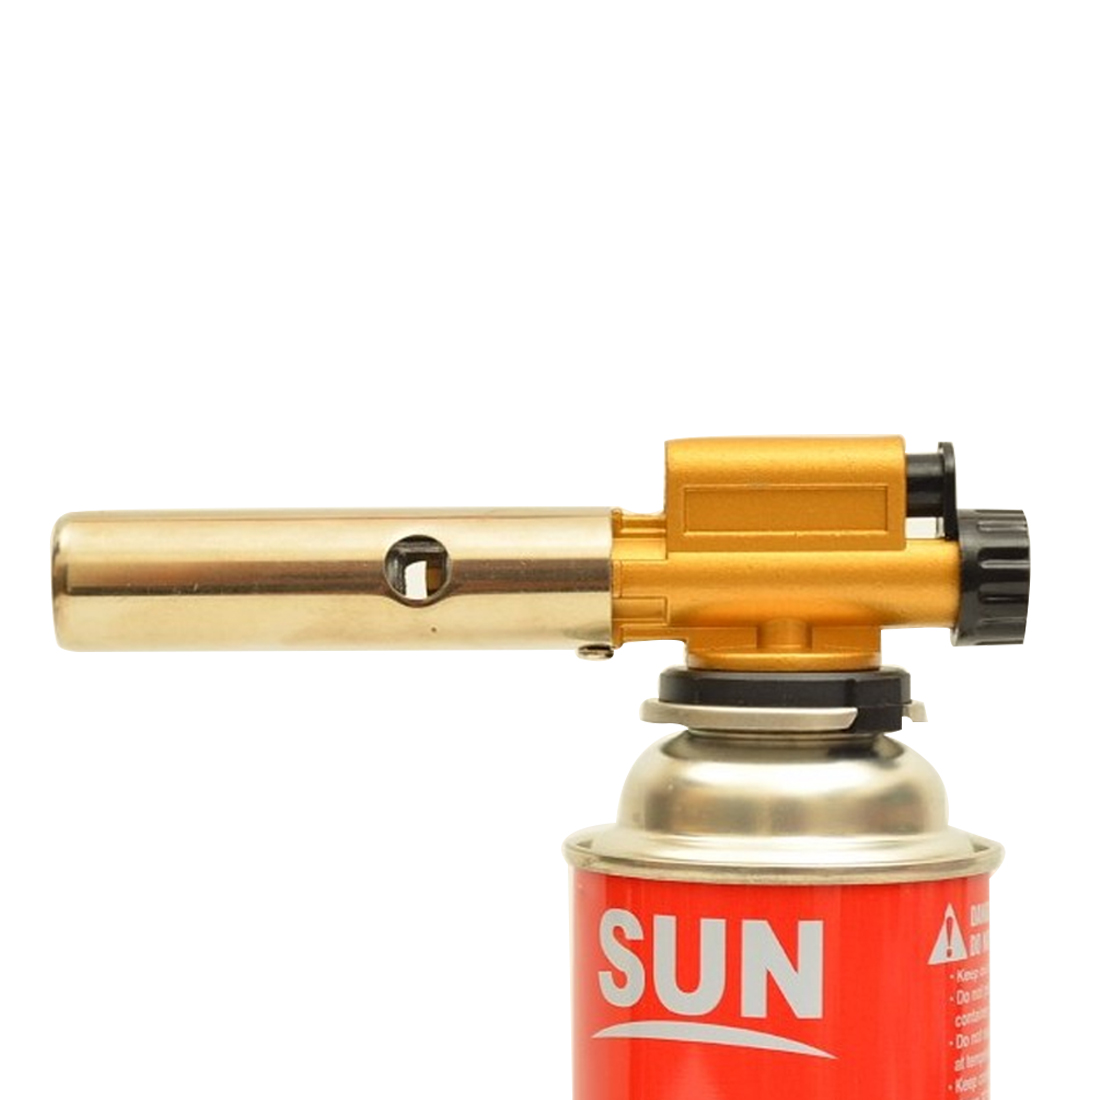 Metal Electronic Ignition Copper Flame Gun Butane Gas Burners Maker Torch Lighter For Outdoor Camping Picnic Cooking Welding metal flame gun welding gas torch lighter heating ignition butane portable camping welding torches